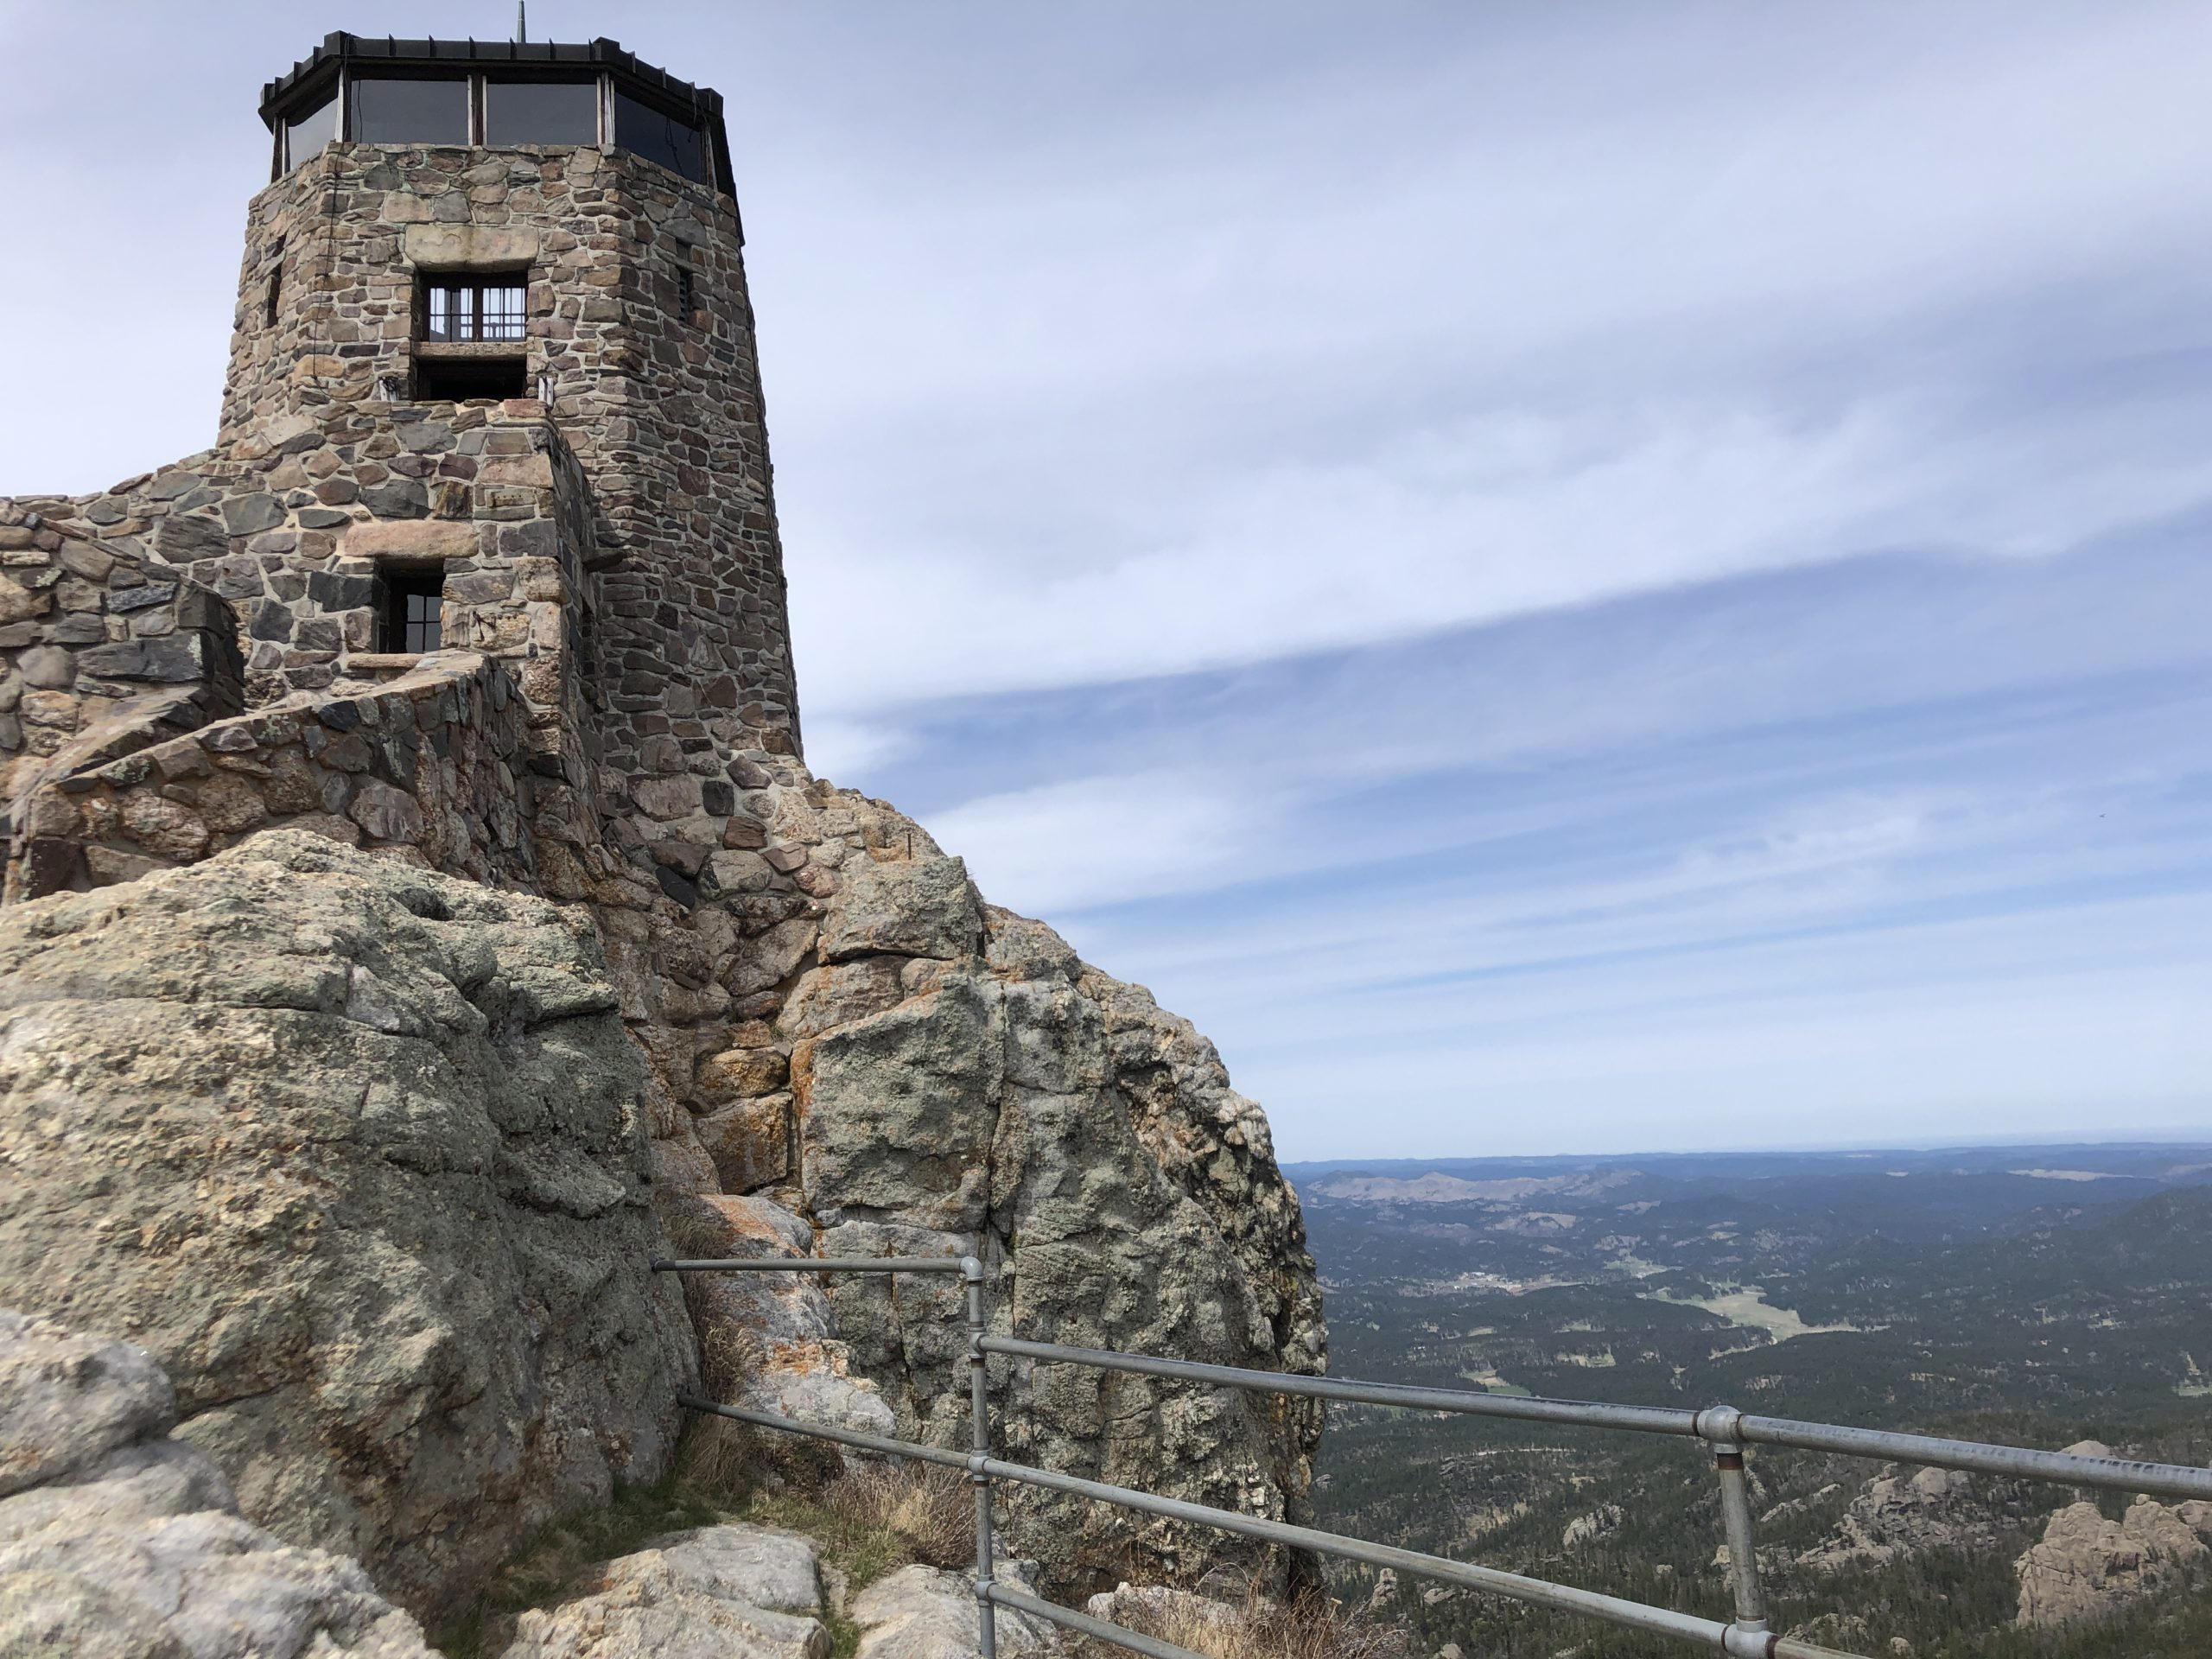 A stone tower atop a mountain overlooking the Black Hills National Forest